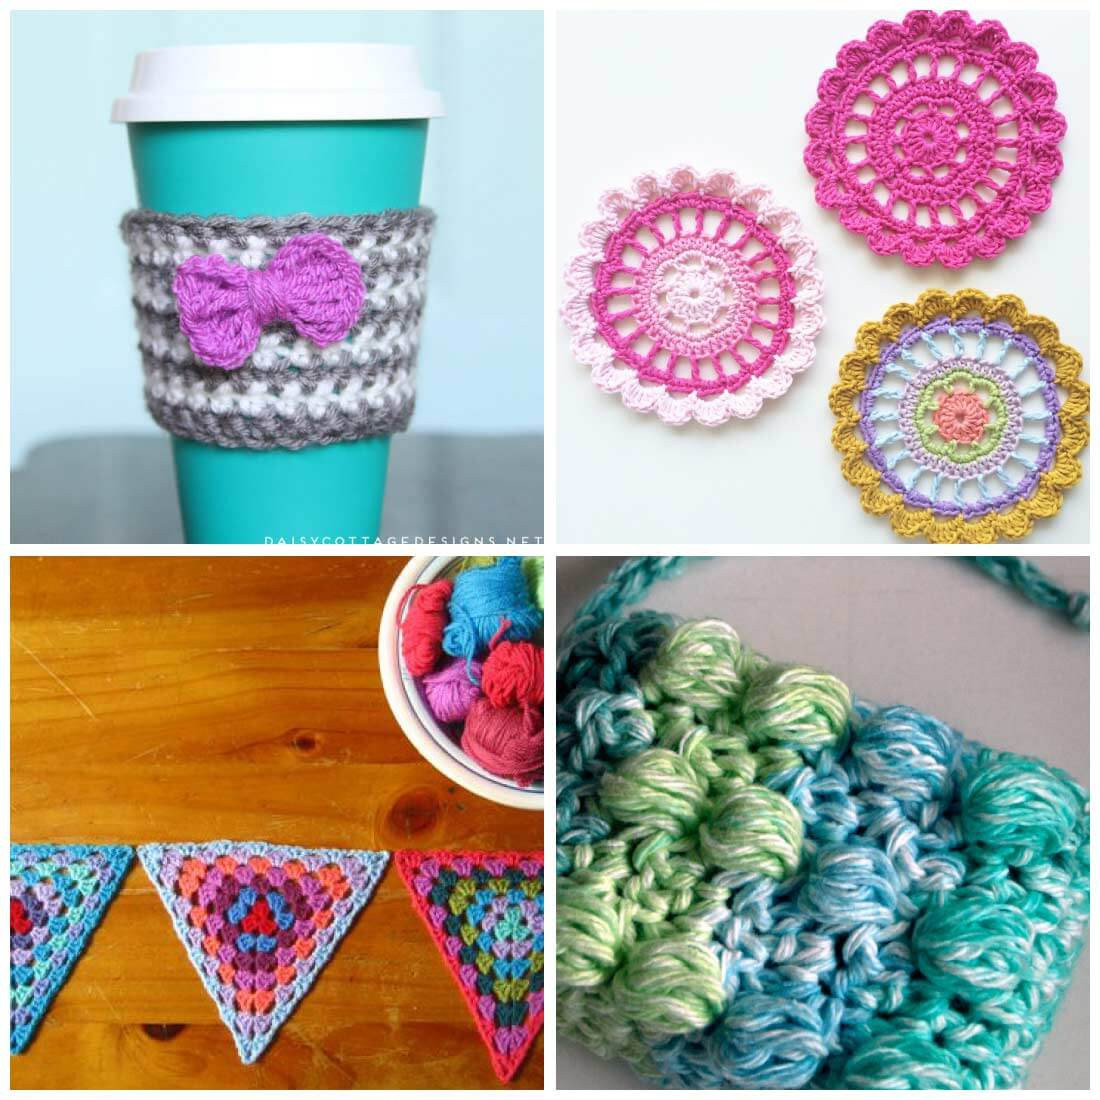 Quick and Easy Crochet Lovely Easy Crochet Patterns Free Crochet Patterns On Daisy Of Incredible 48 Pics Quick and Easy Crochet